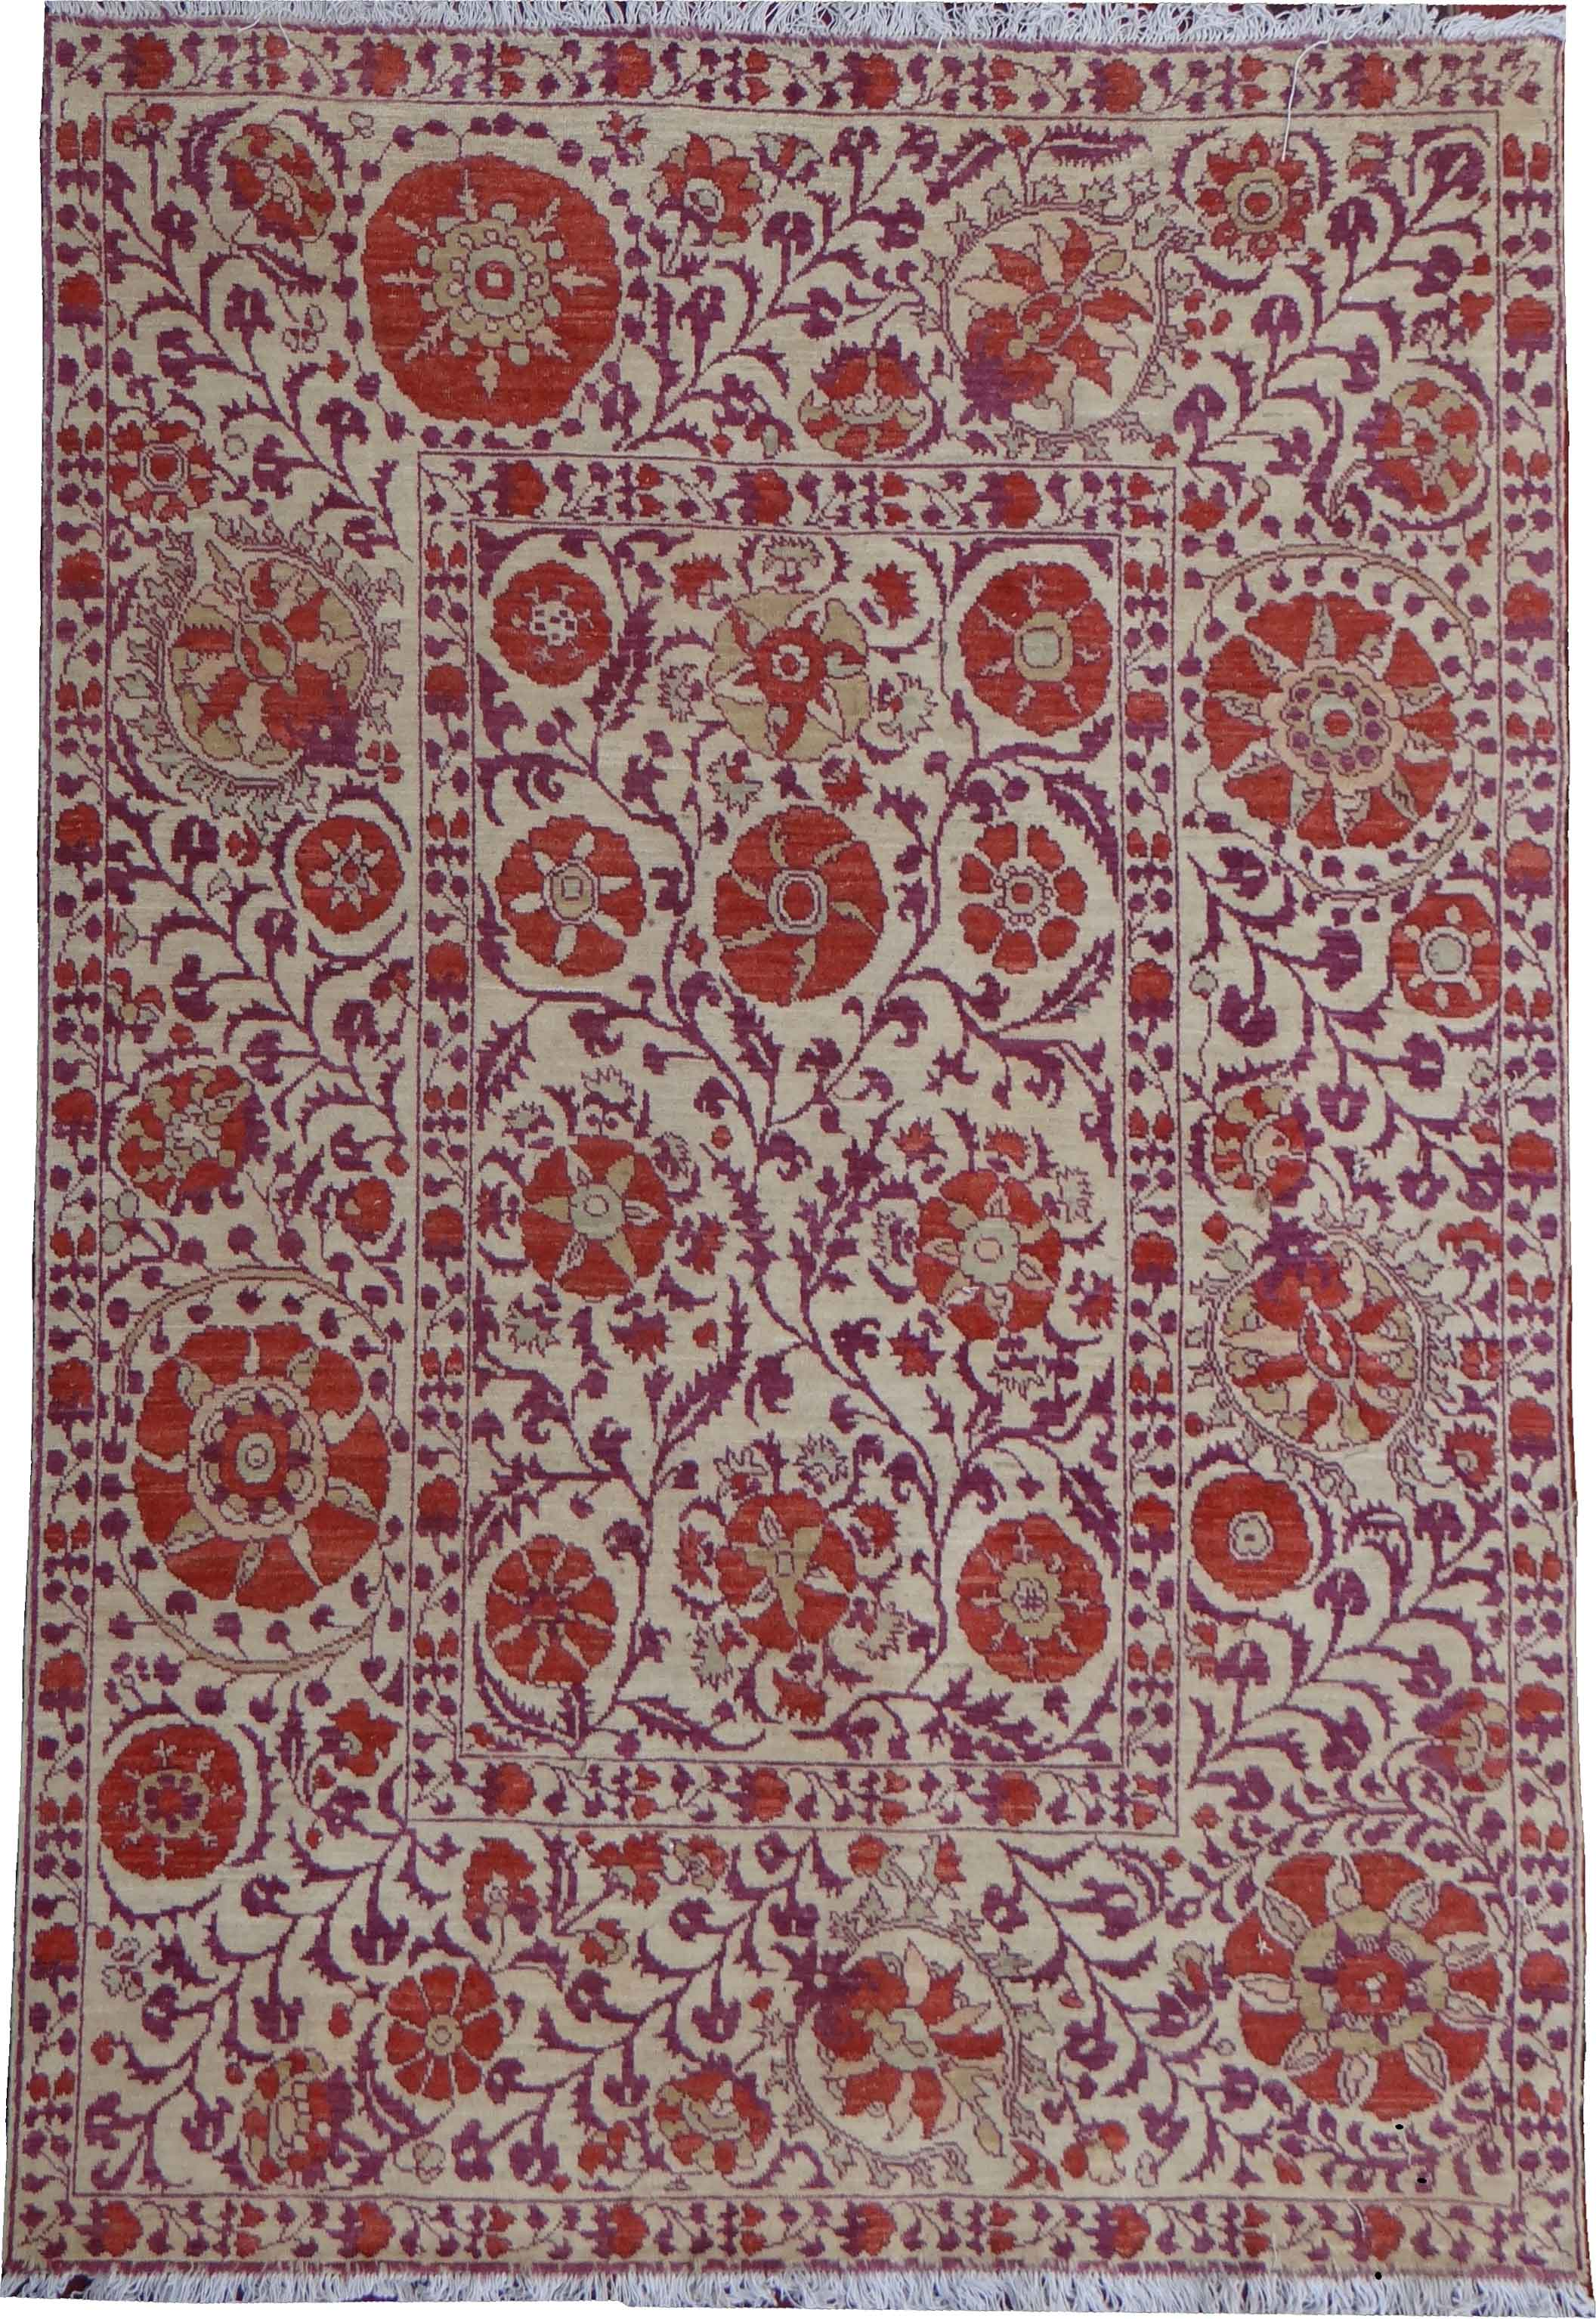 'Bamiyan' in colour 'Spring' by Nouveau Afghan | Image courtesy of Nouveau Afghan.